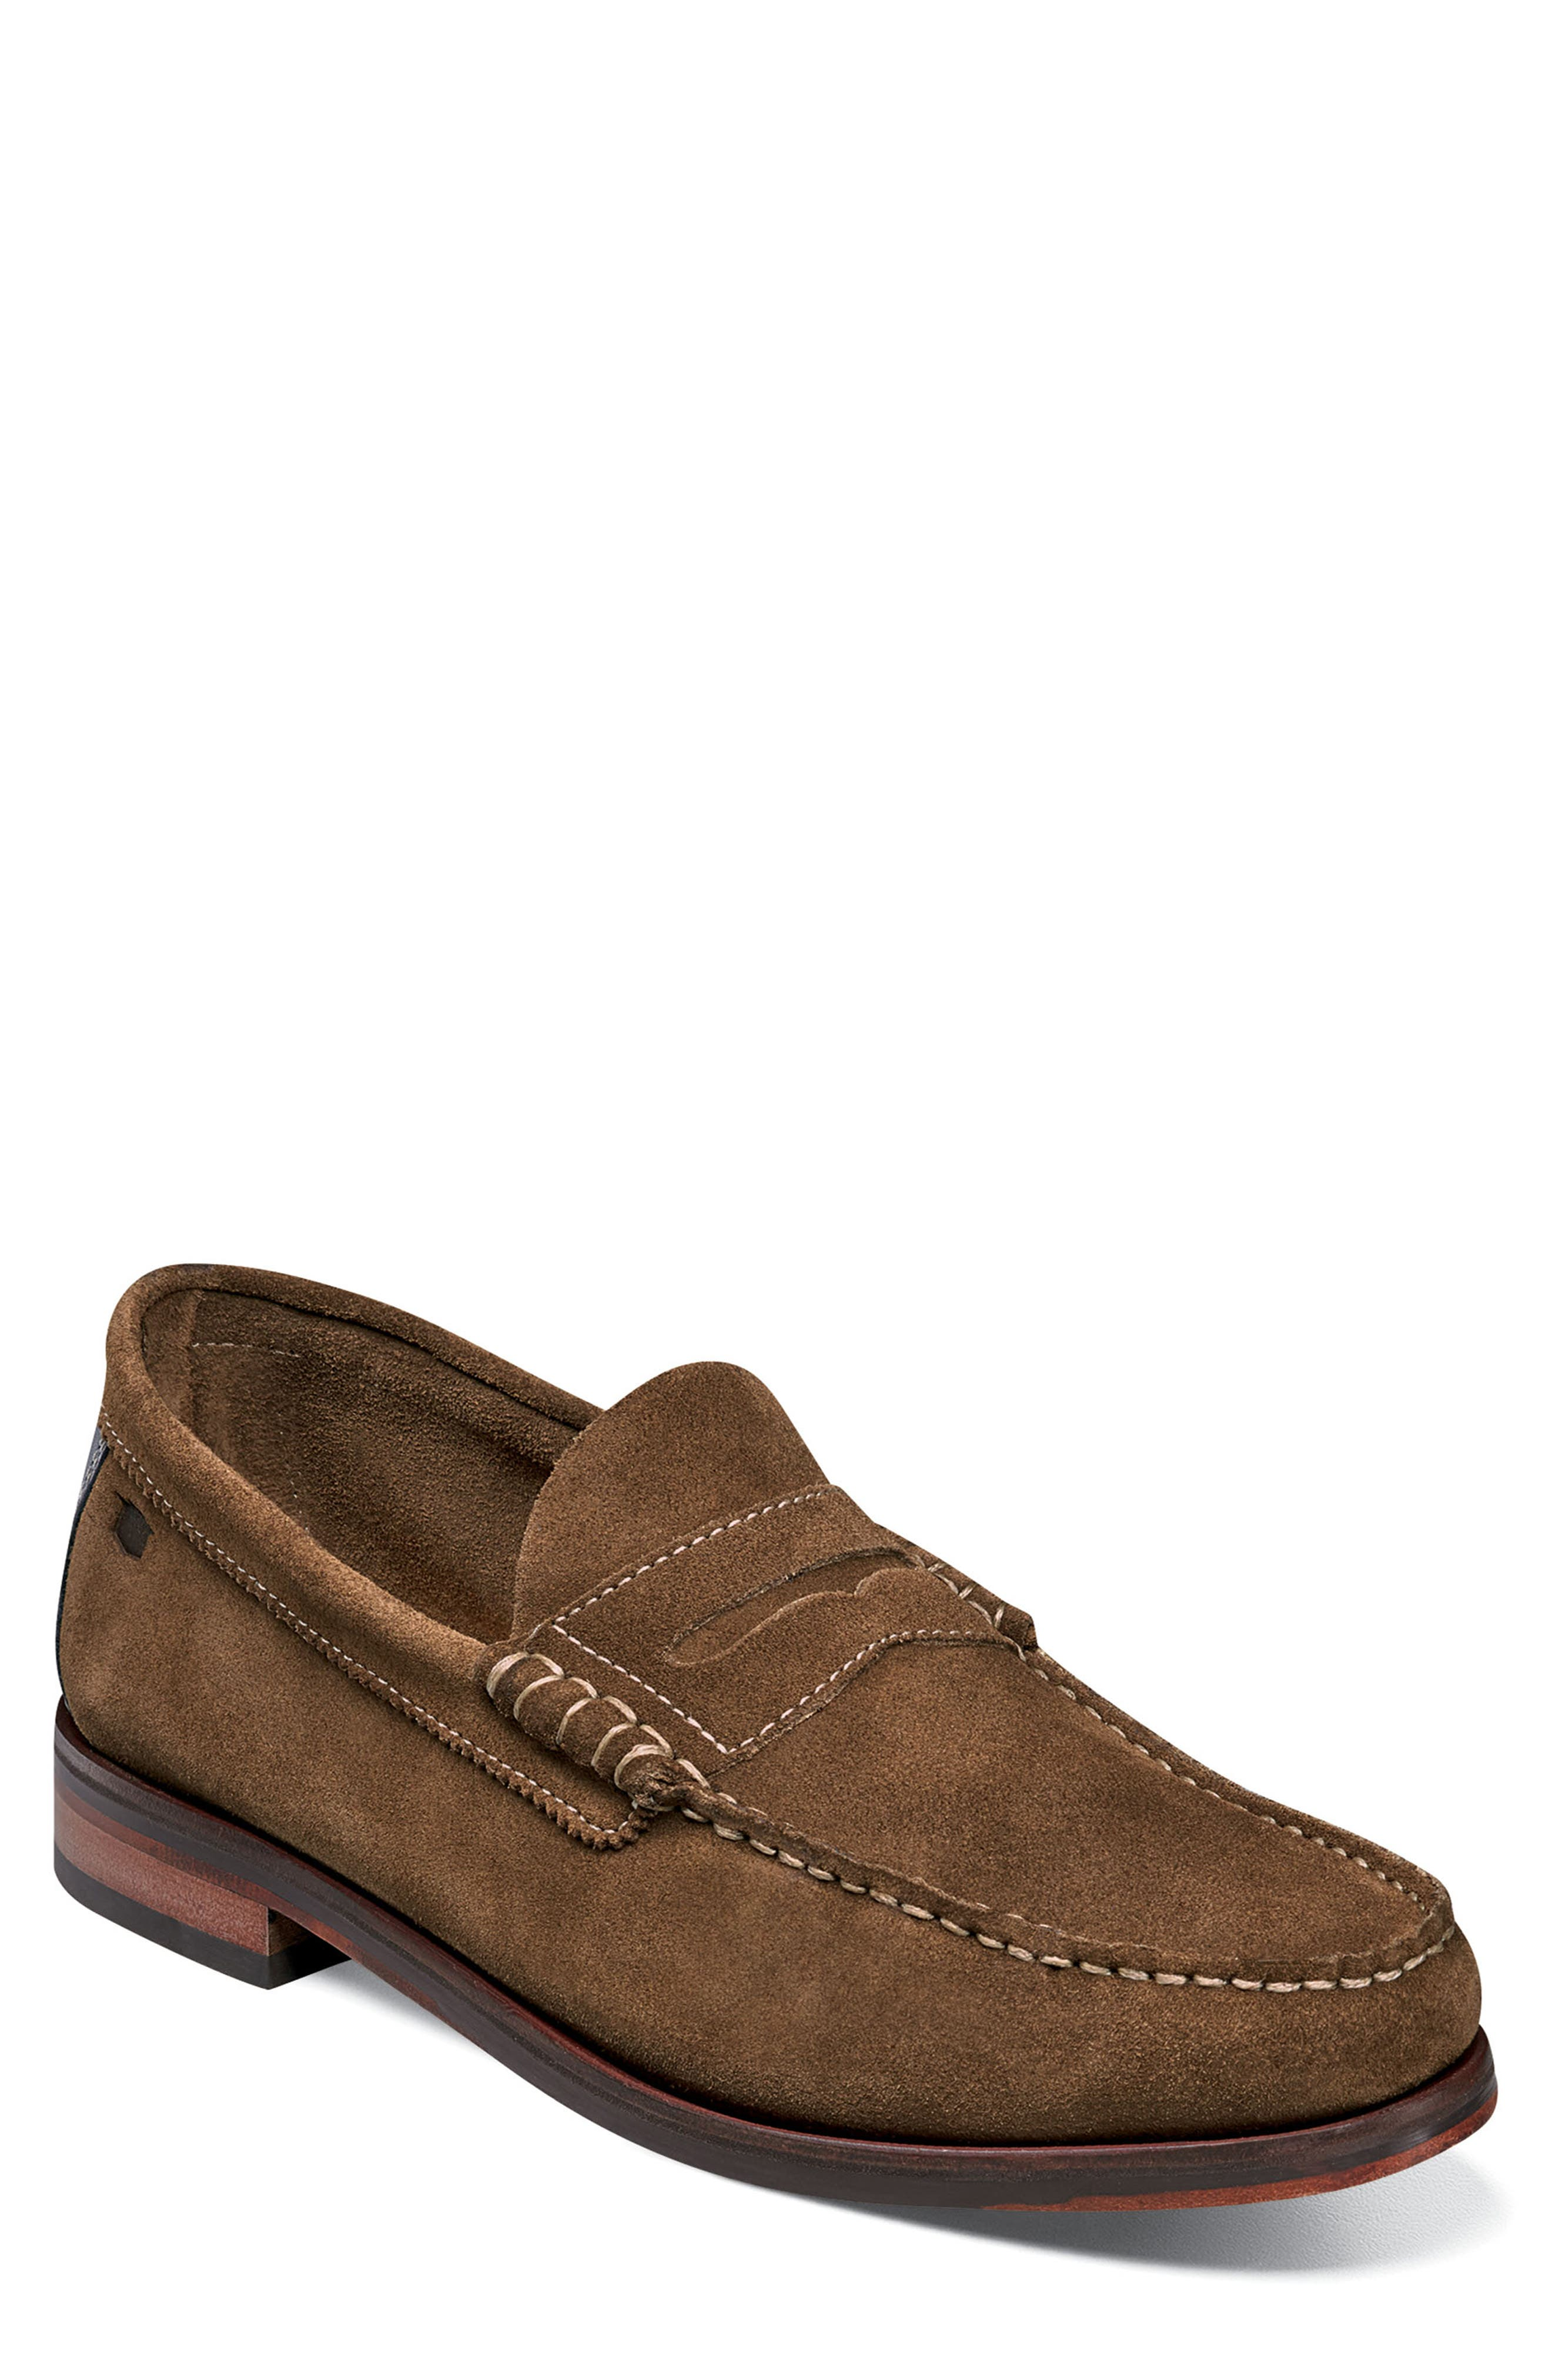 Heads-Up Penny Loafer,                             Main thumbnail 1, color,                             SNUFF SUEDE